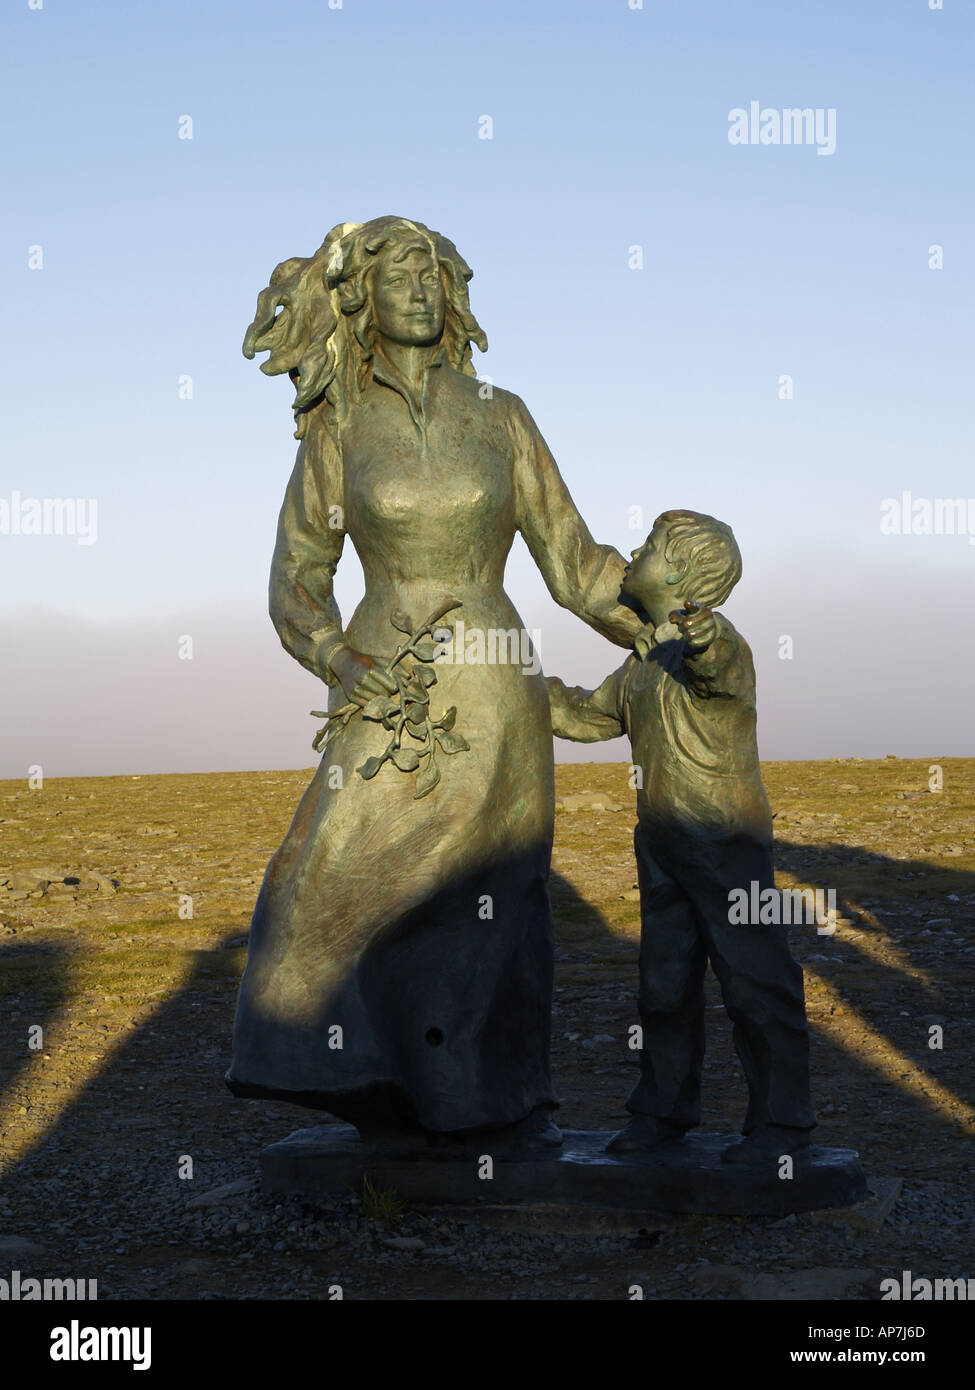 Nordkapp, Cape North, sculpture - Stock Image